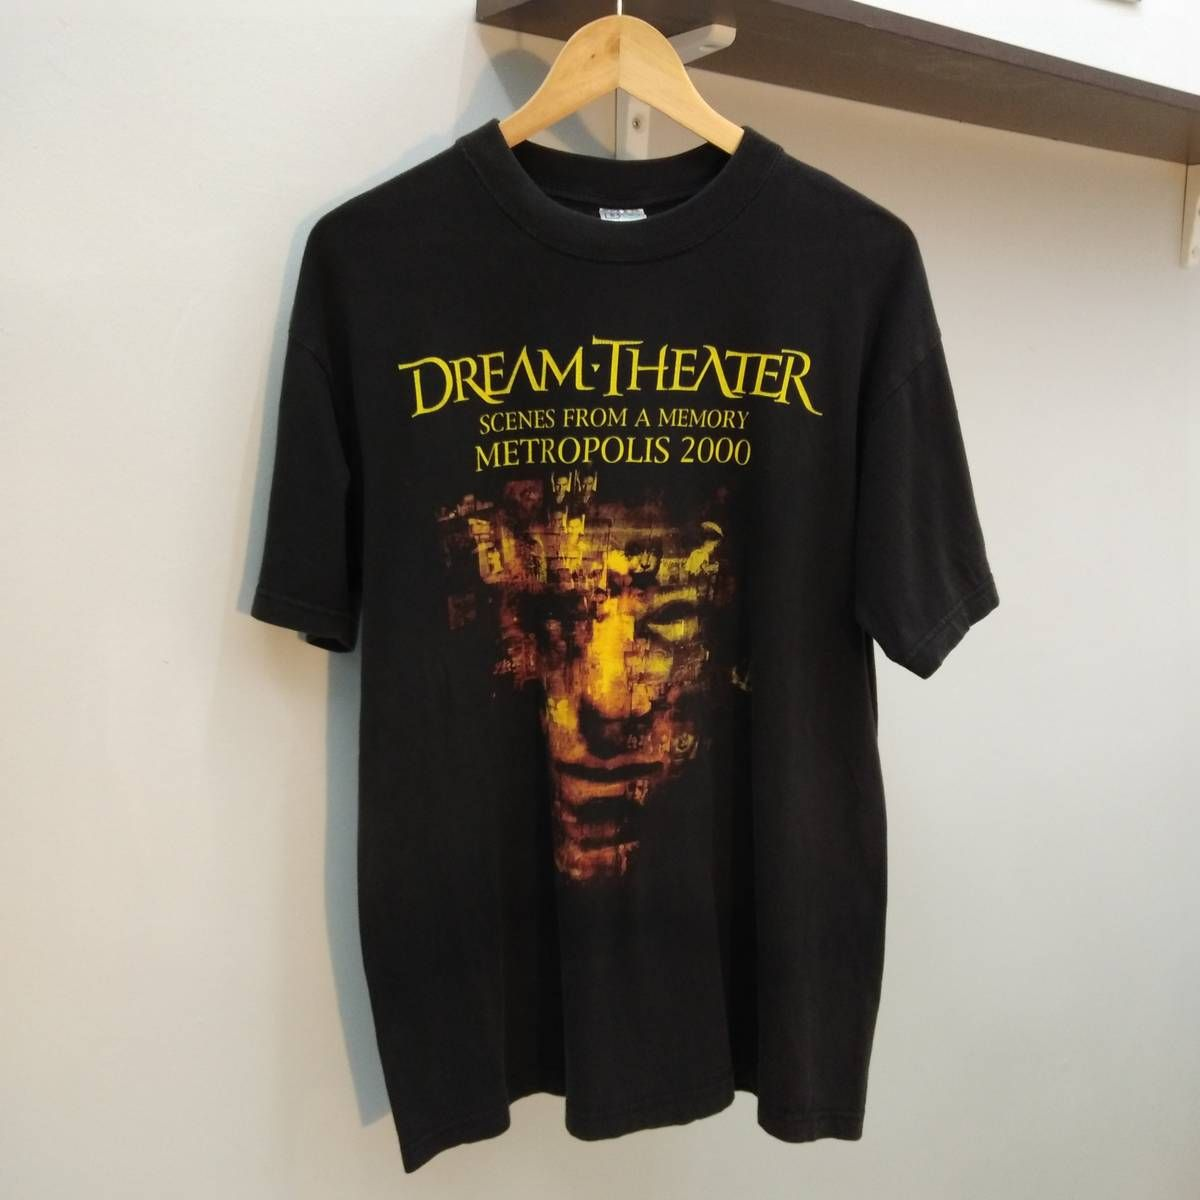 Searching For 00 39 S Dream Theater Tour Tee We Ve Got Tour Tee Tops Starting At 70 And Plenty Of Other Tops Sho Vintage Band Tees Dream Theater Tee Outfit